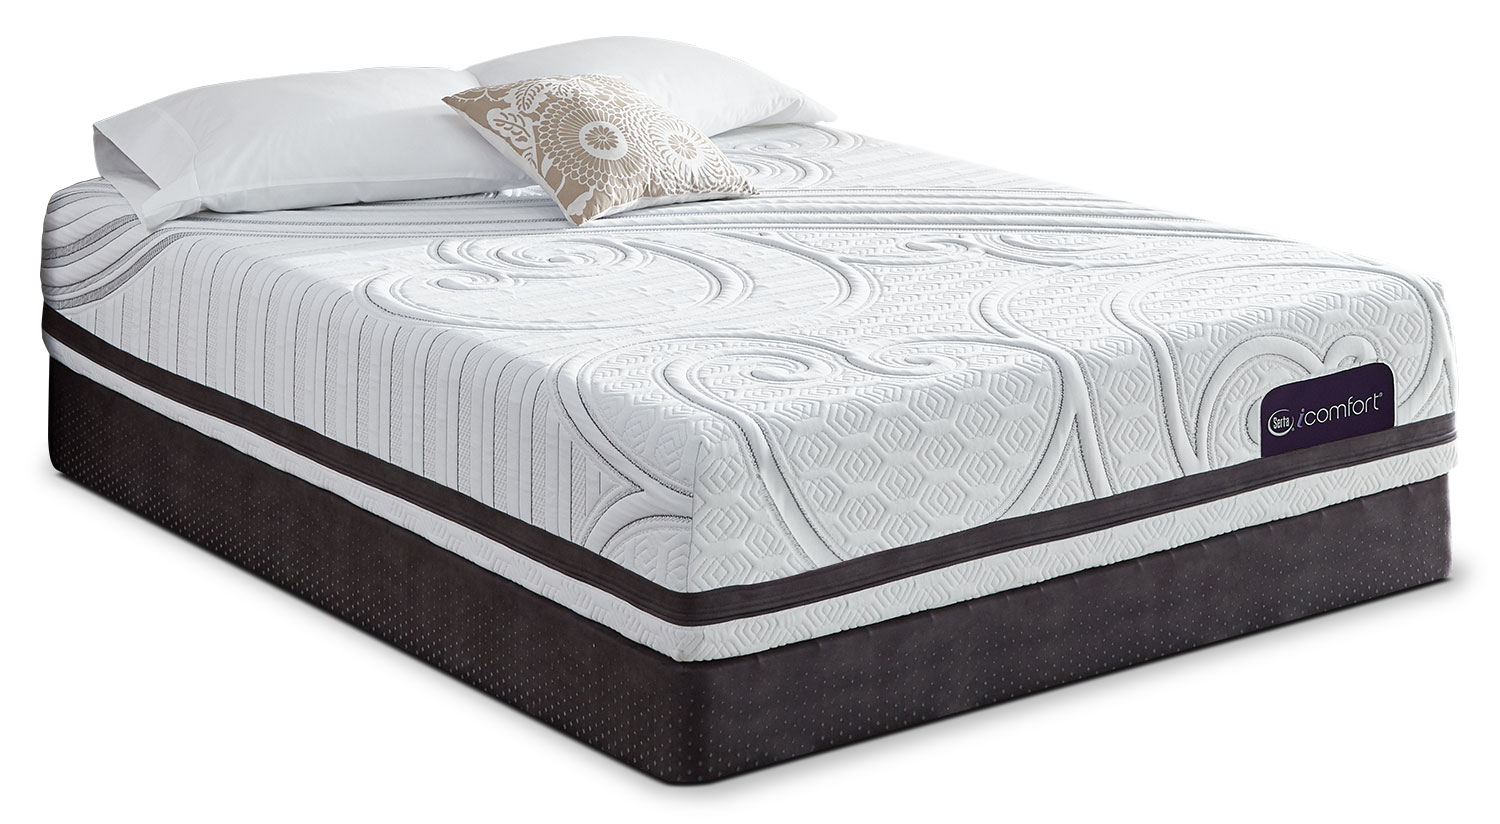 Mattresses and Bedding - Serta iComfort Visionary Firm 2 Full Mattress Set